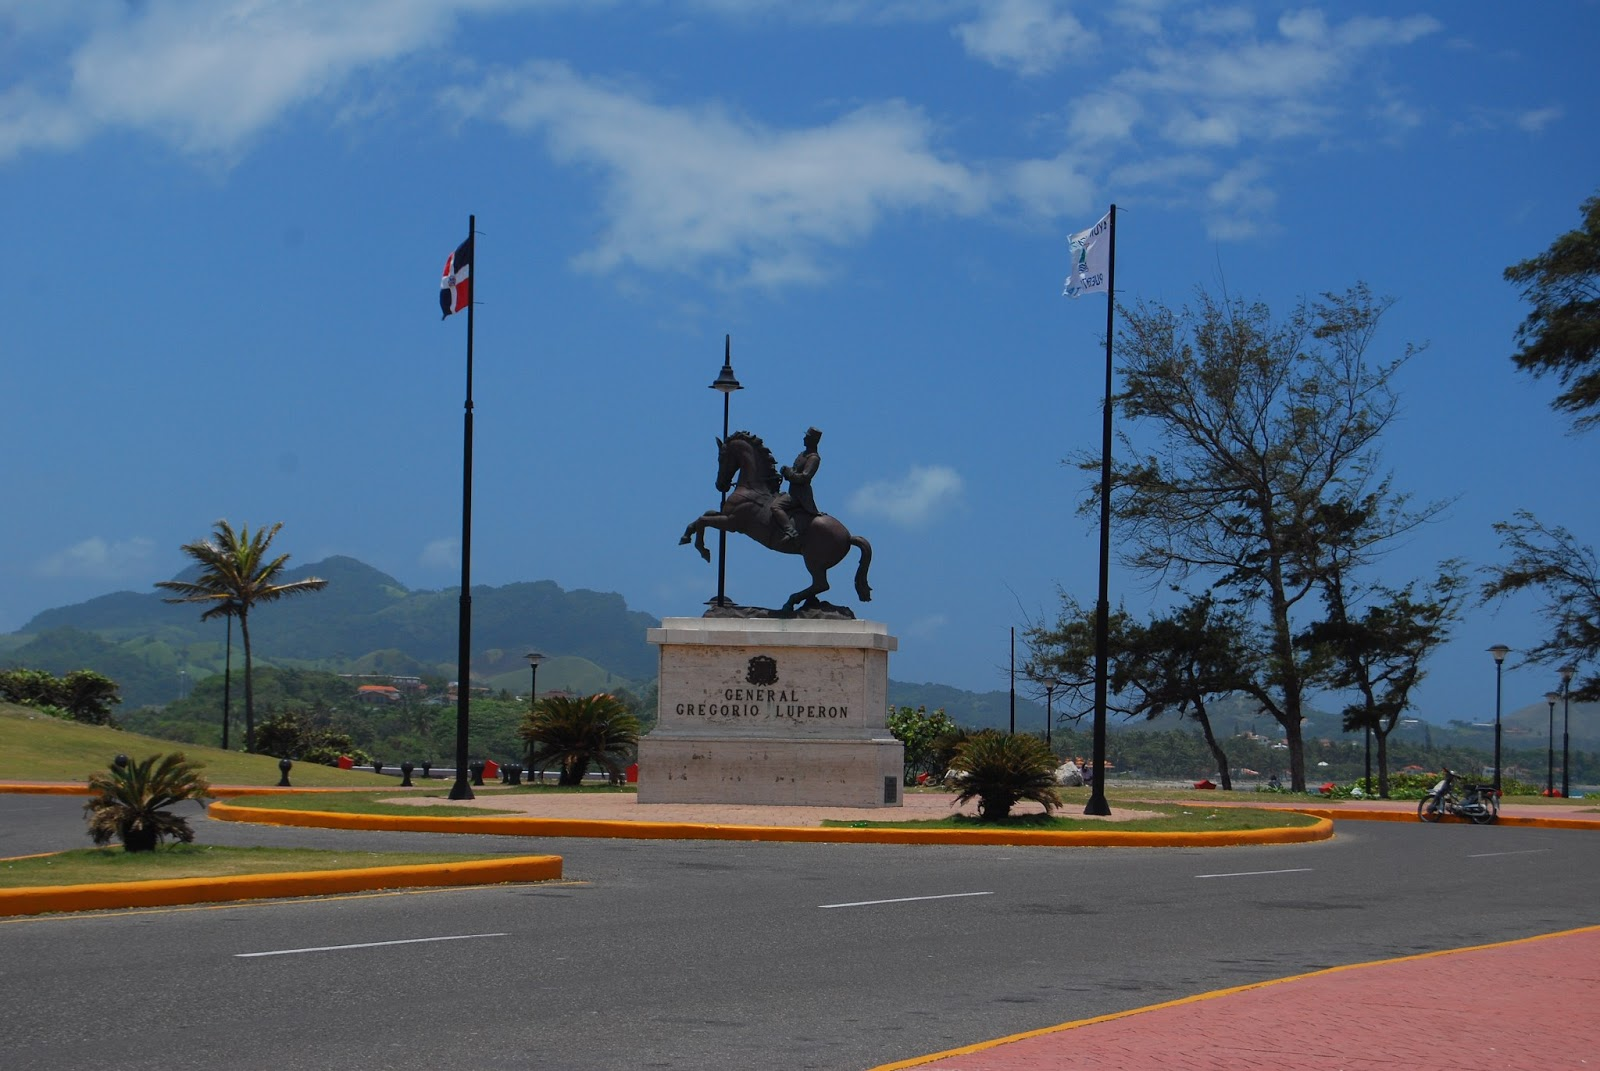 puerto plata guys 09022017 for a stay in paradise, check out these top 10 hotels and resorts in the gorgeous puerto plata.